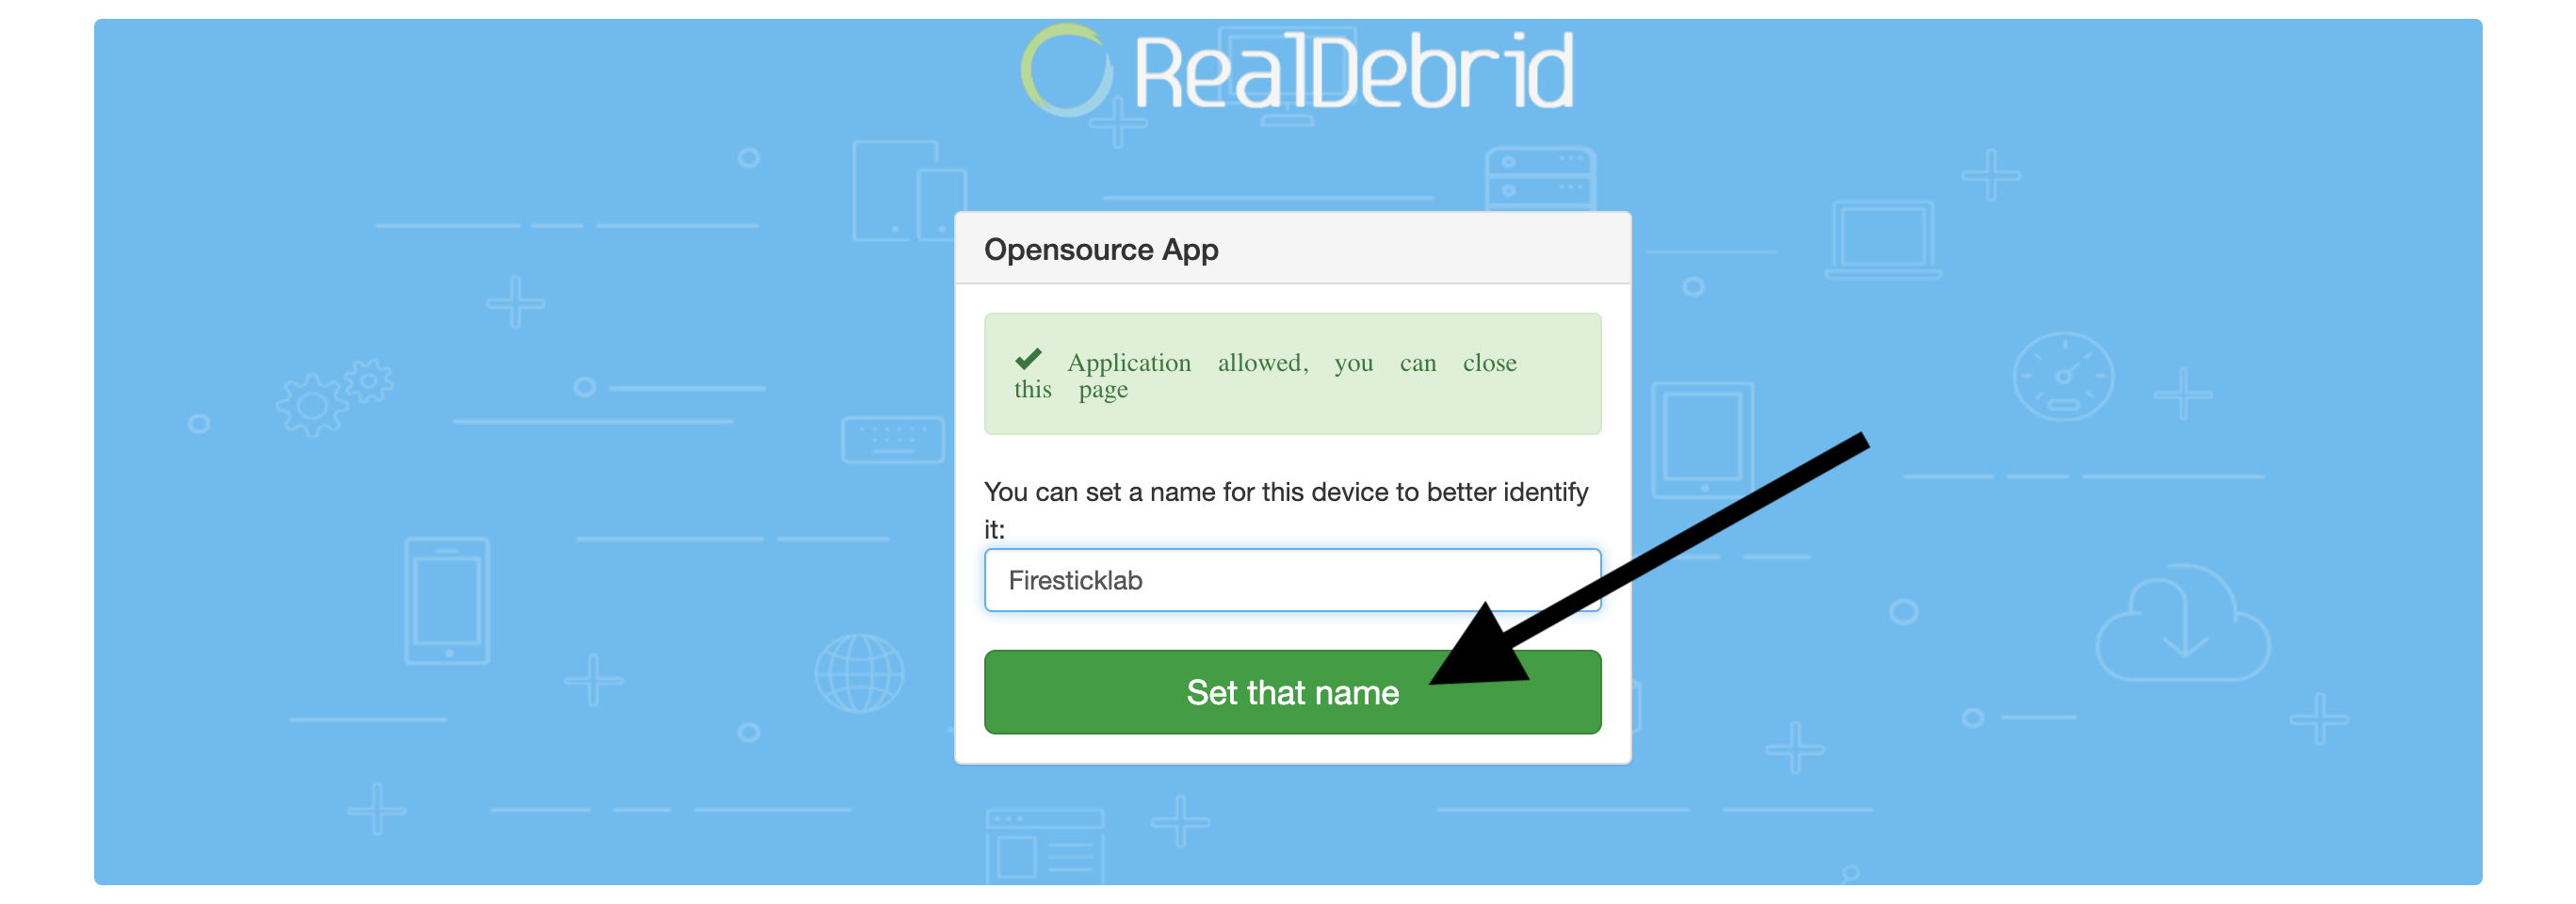 how-to-integrate-real-debrid